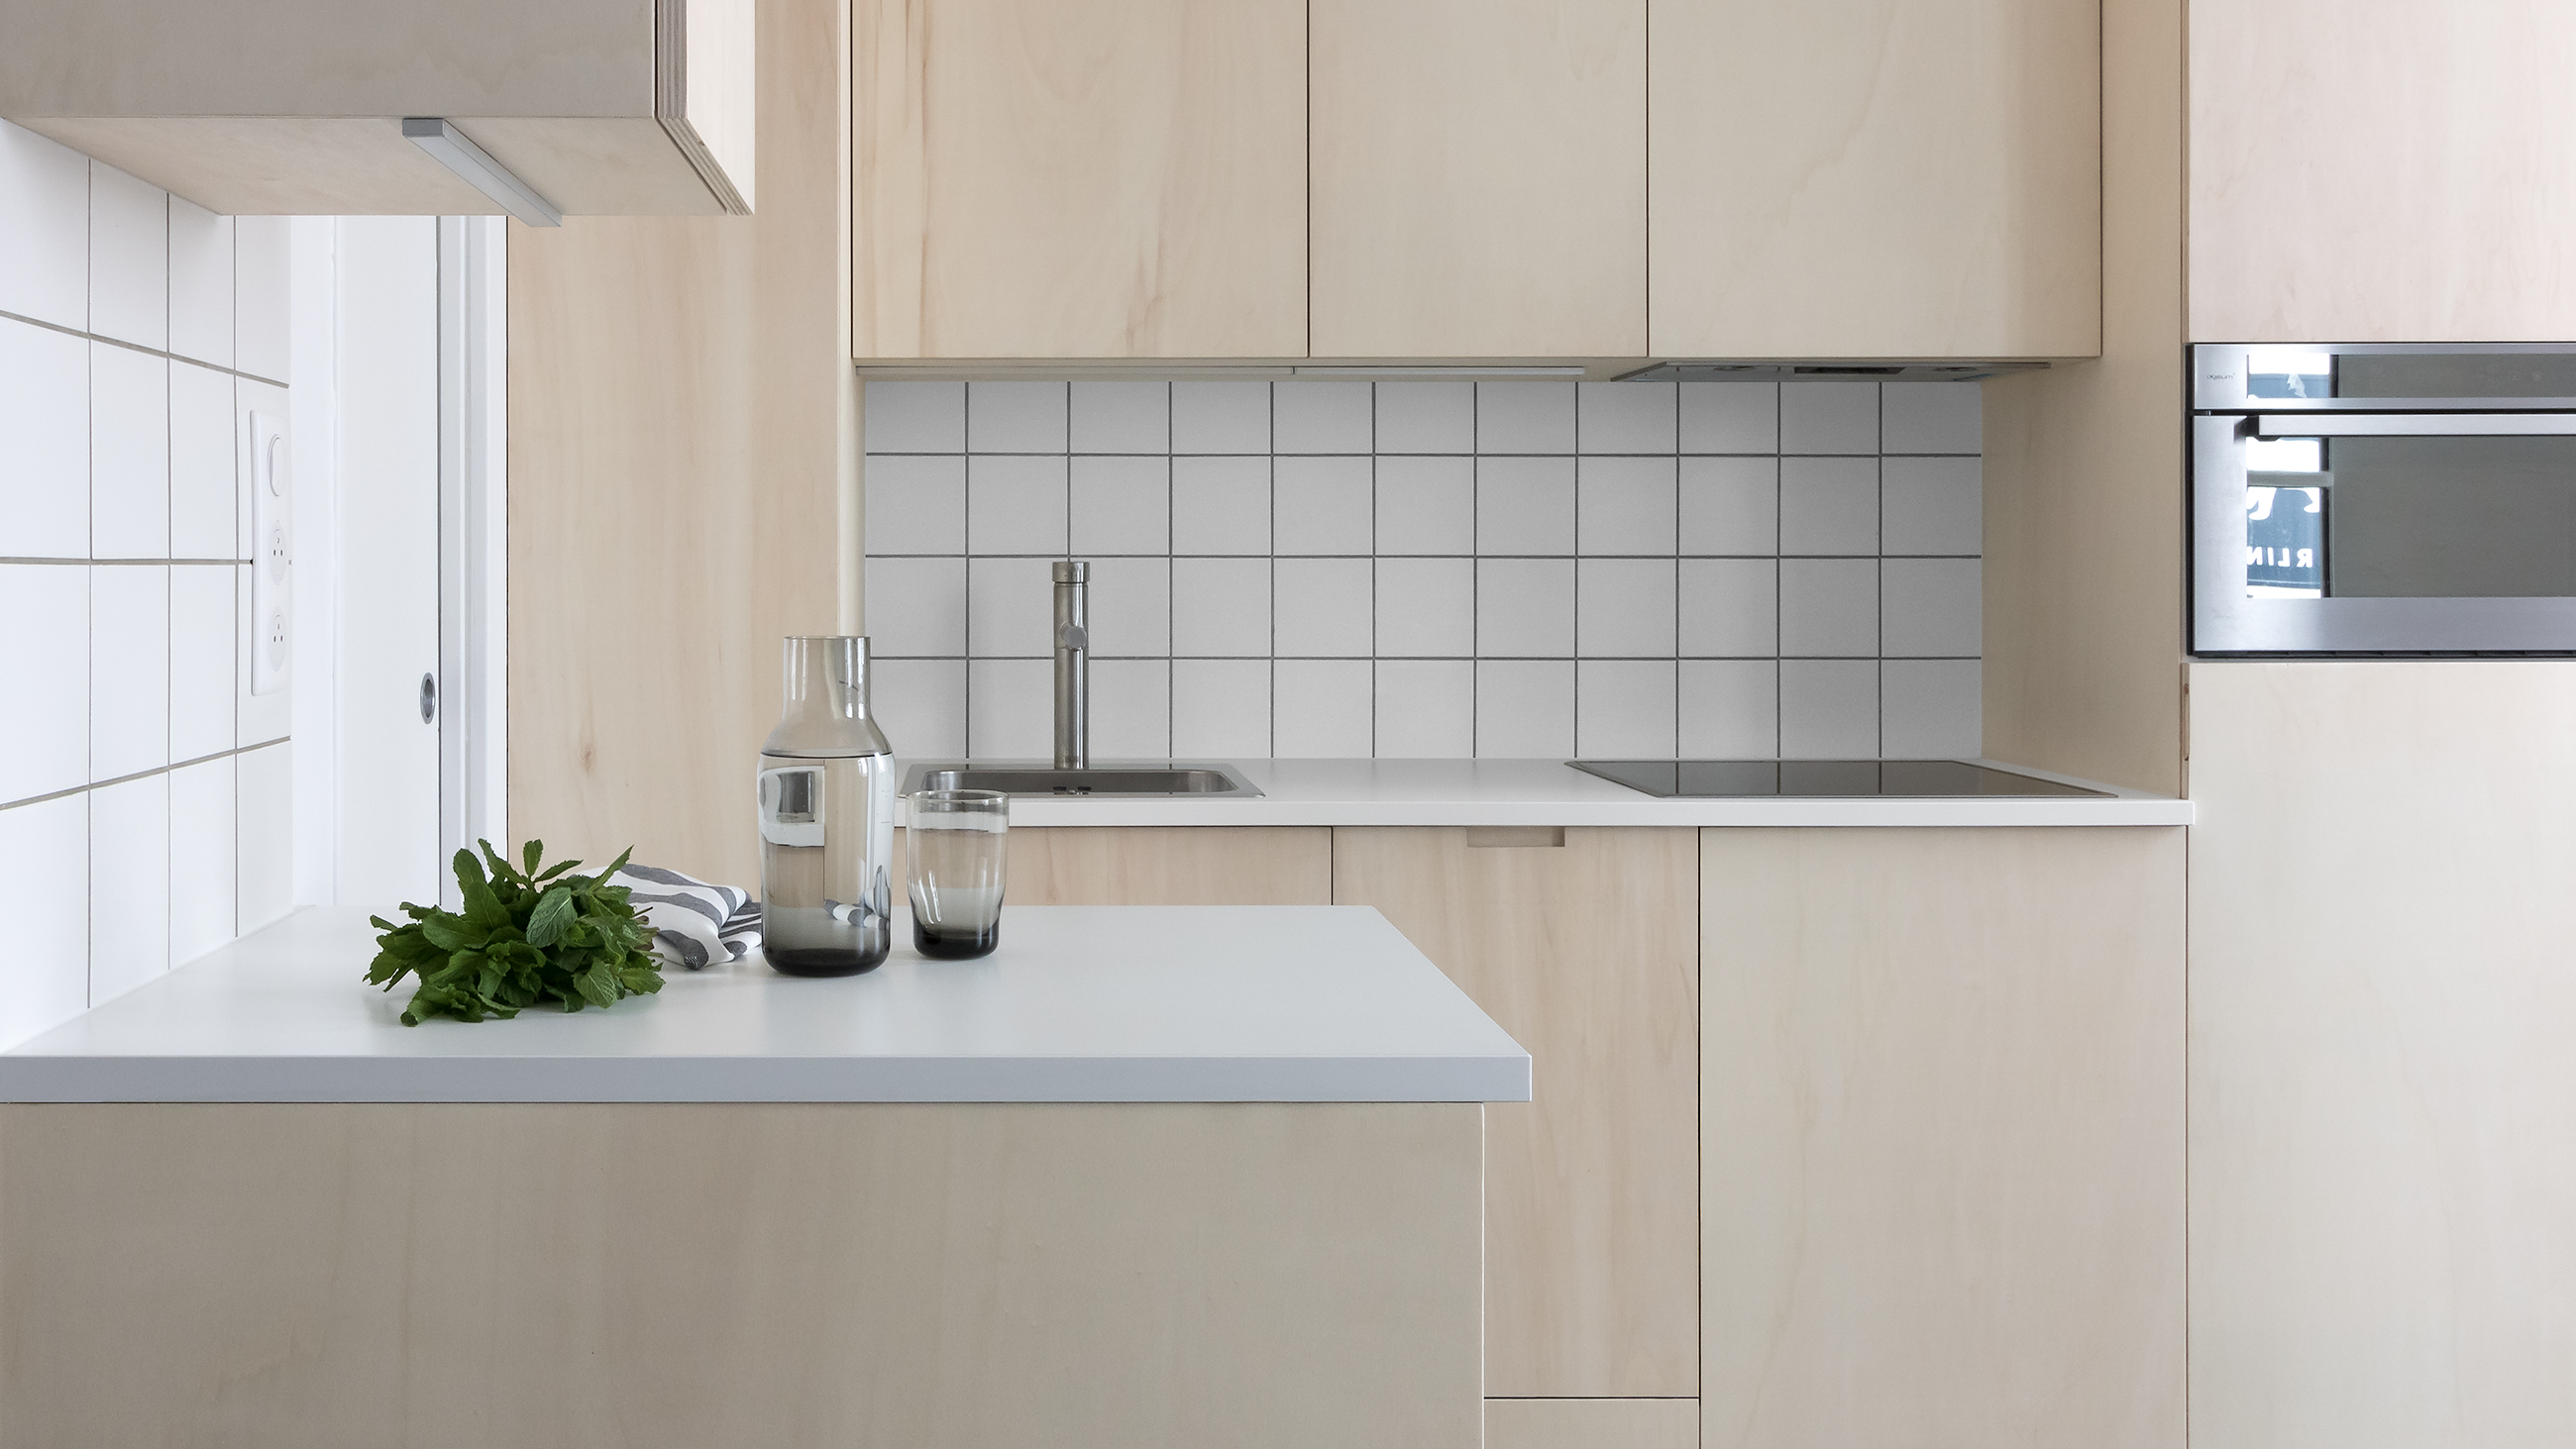 Modern minimal Japanese plywood kitchen with white worktop and wall tiles